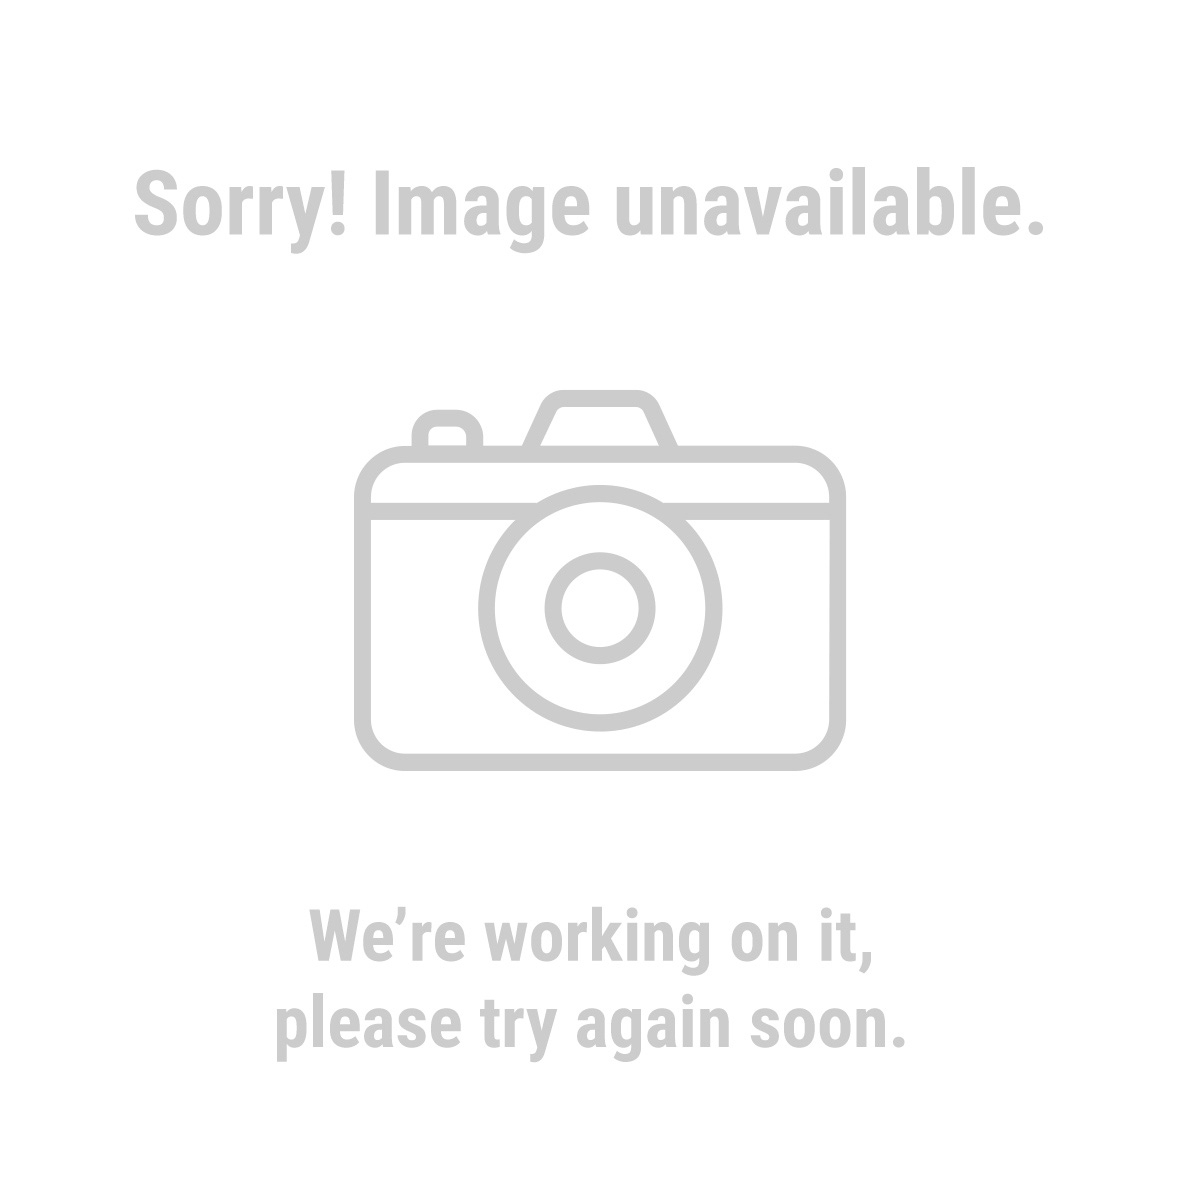 Warrior® 69657 5 Piece Diamond Coated Rotary Cutting Discs